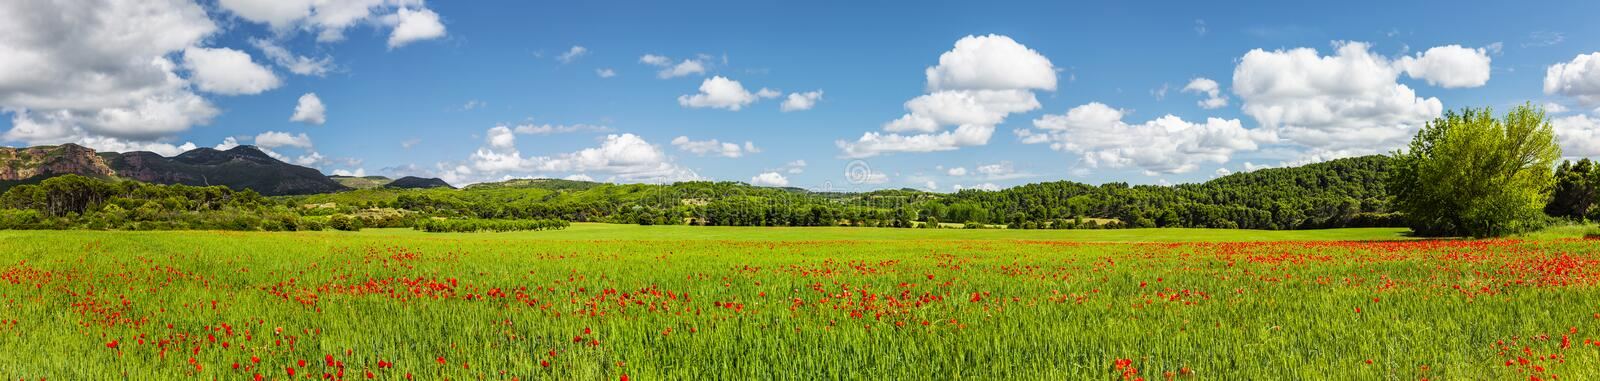 Red Poppies in cornfiled with blue sky stock images